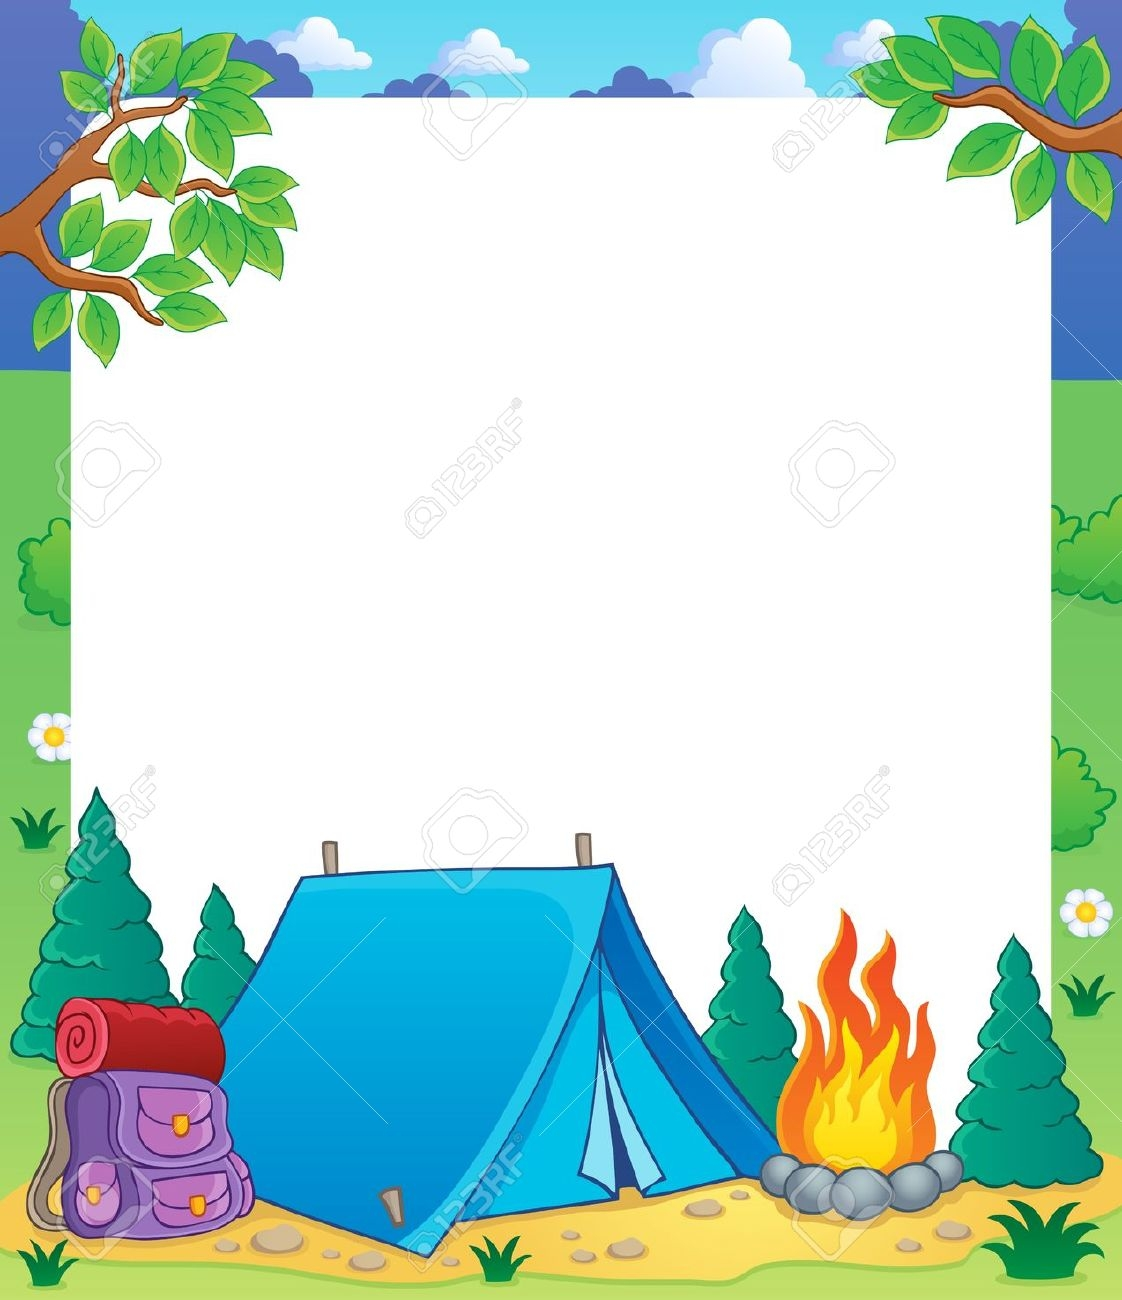 Free camping images clipart picture black and white stock 51+ Free Camping Clip Art | ClipartLook picture black and white stock